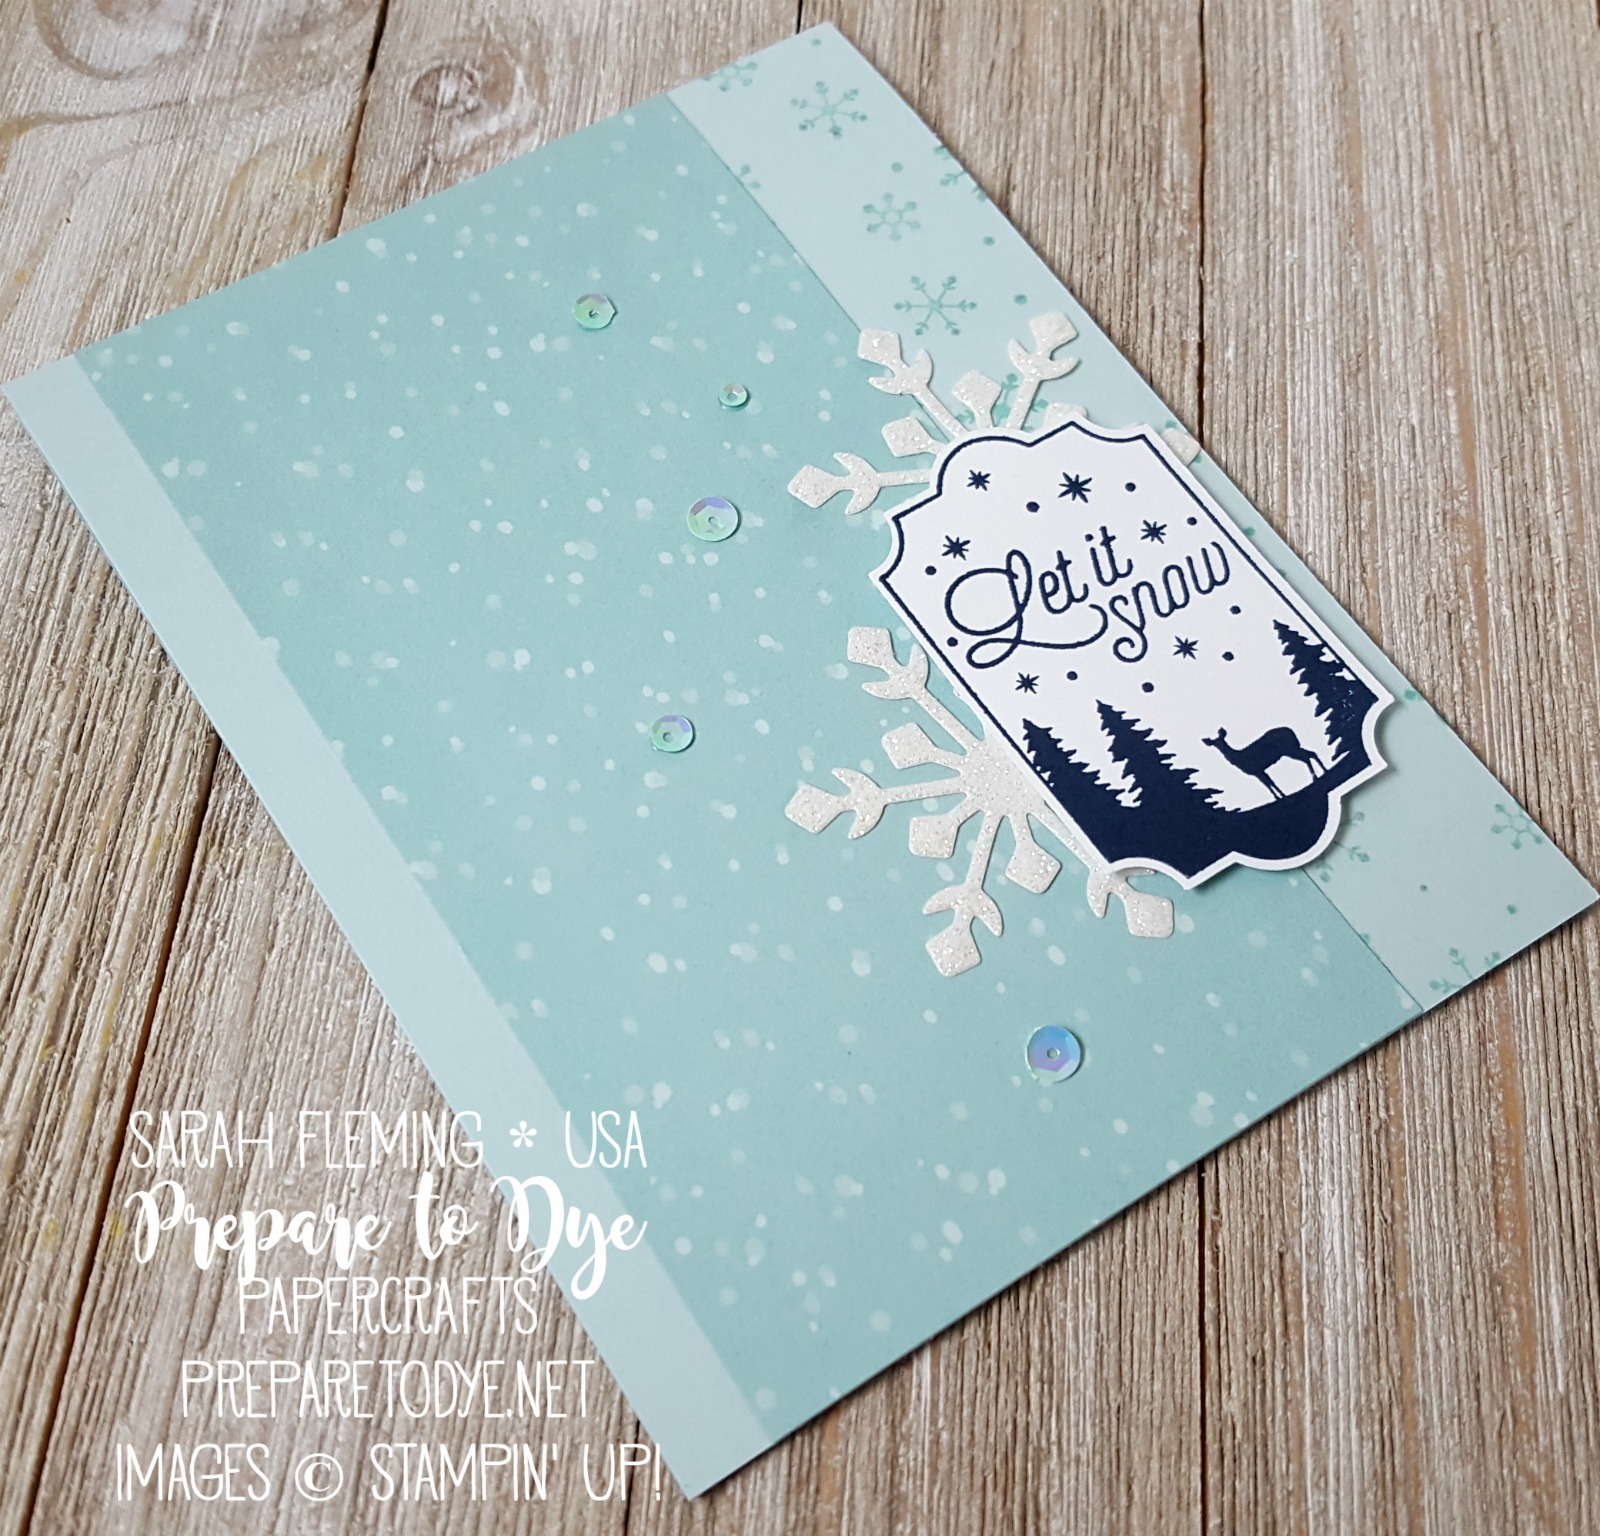 Stampin' Up! Merry Little Labels bundle with Everyday Label punch, Tags & Trimmings bundle, Trim Your Stocking thinlits, Christmas Around the World paper - handmade Christmas holiday card - Sarah Fleming - Prepare to Dye Papercrafts